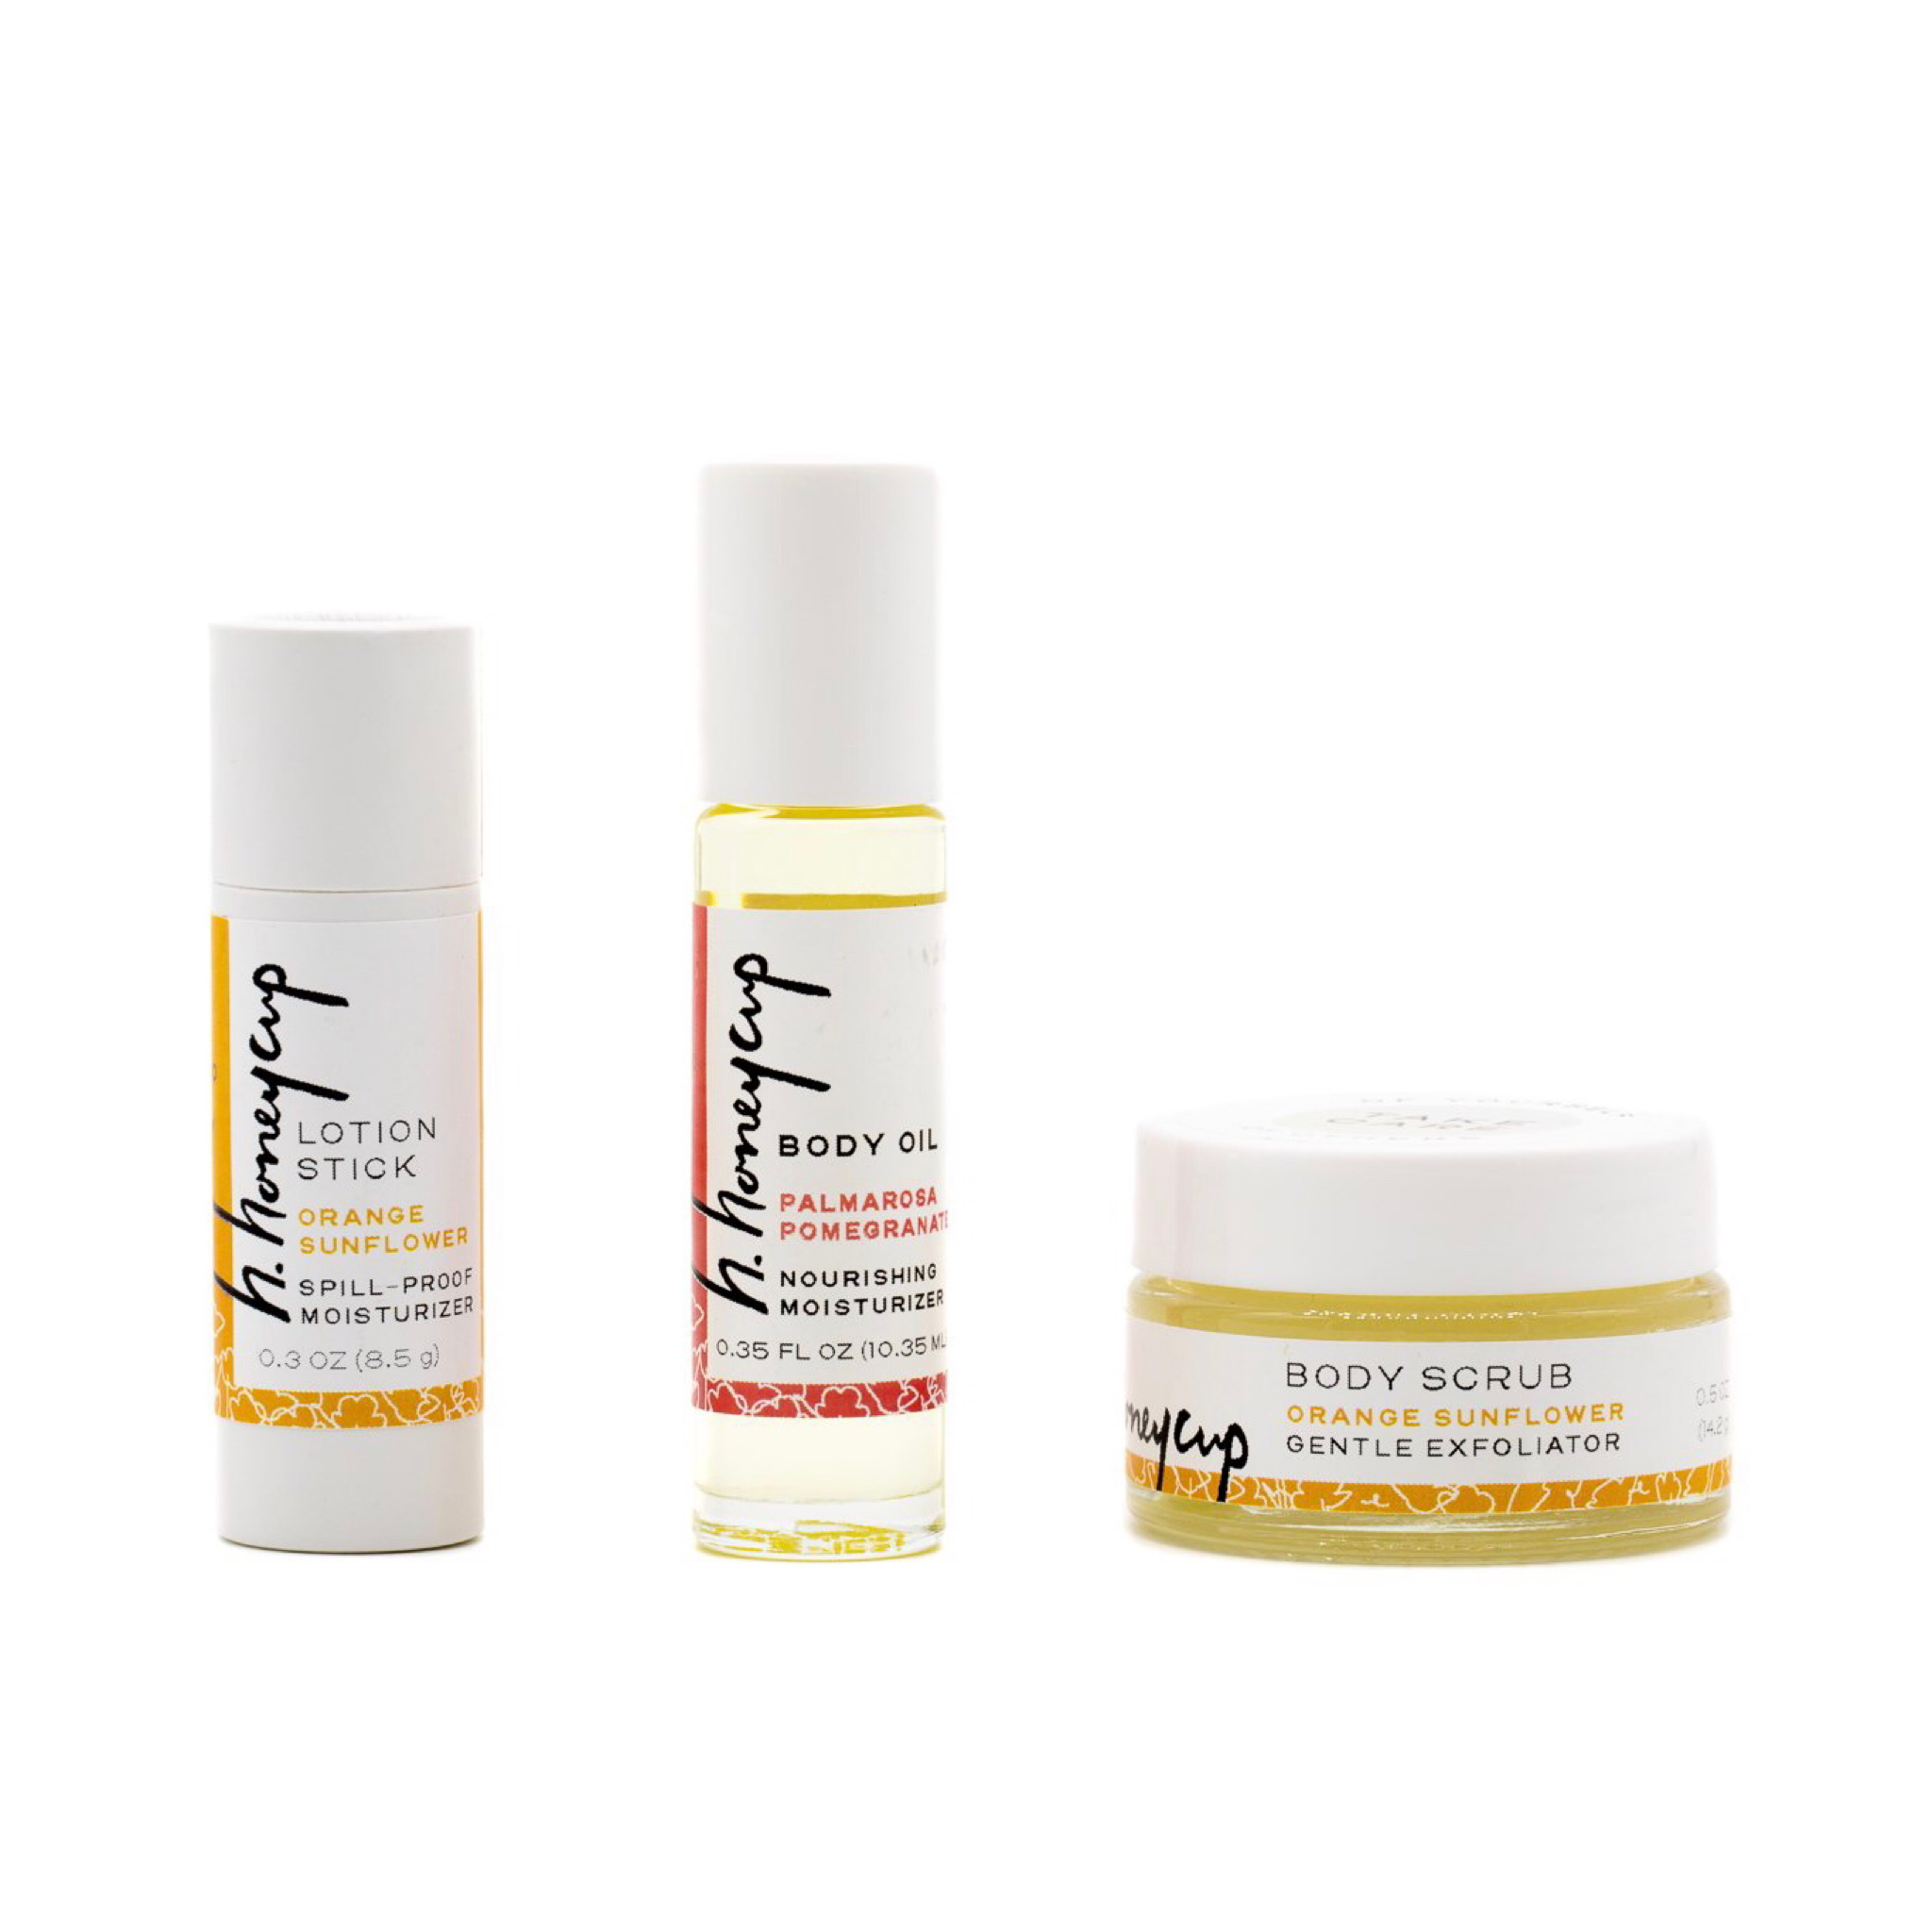 Floating product image of three skincare sample sizes of orange body scrub, lavender body oil and orange lotion stick